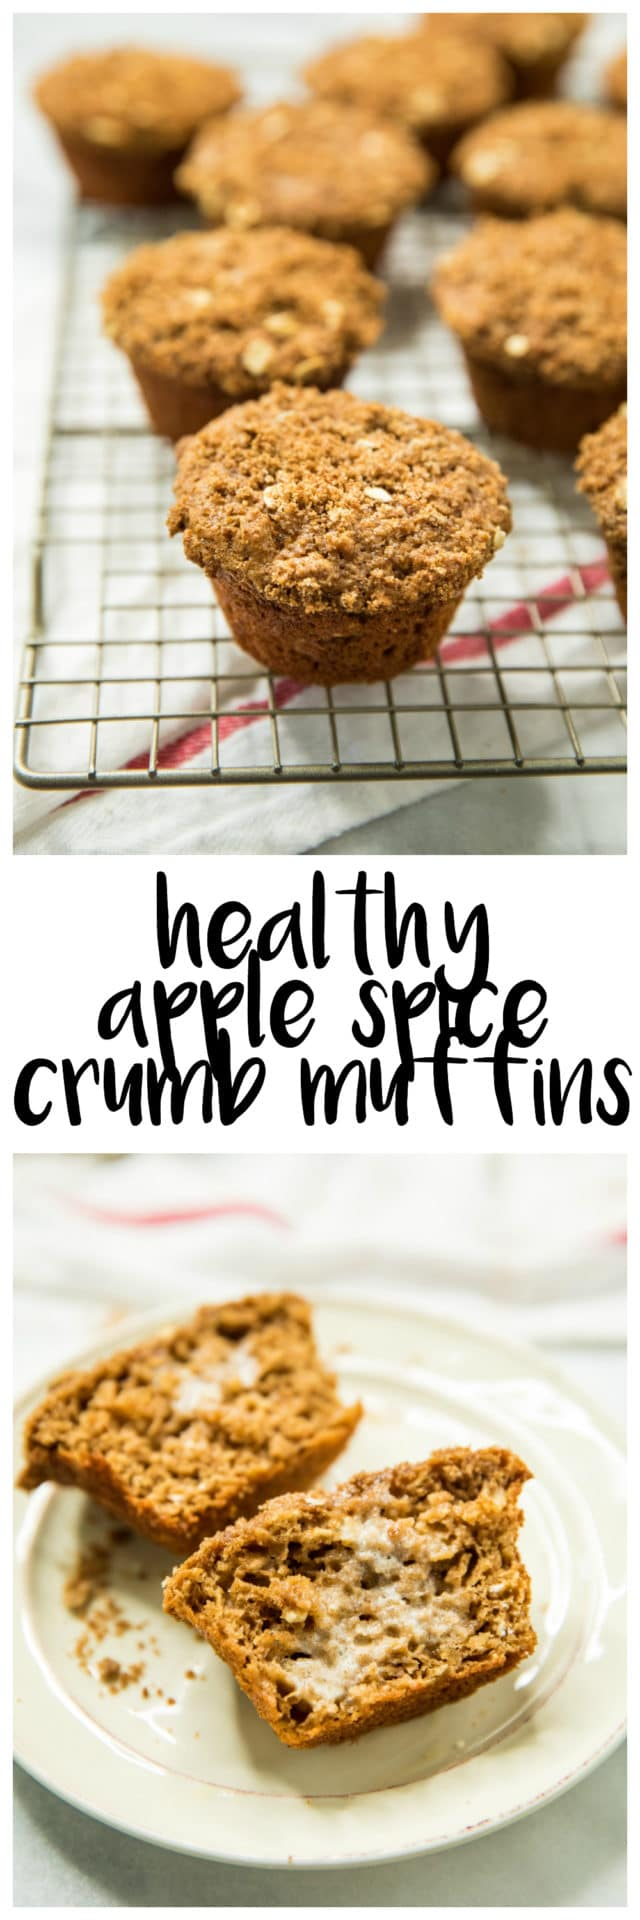 Pinterest image for Healthy Apple Spice Crumb Muffins